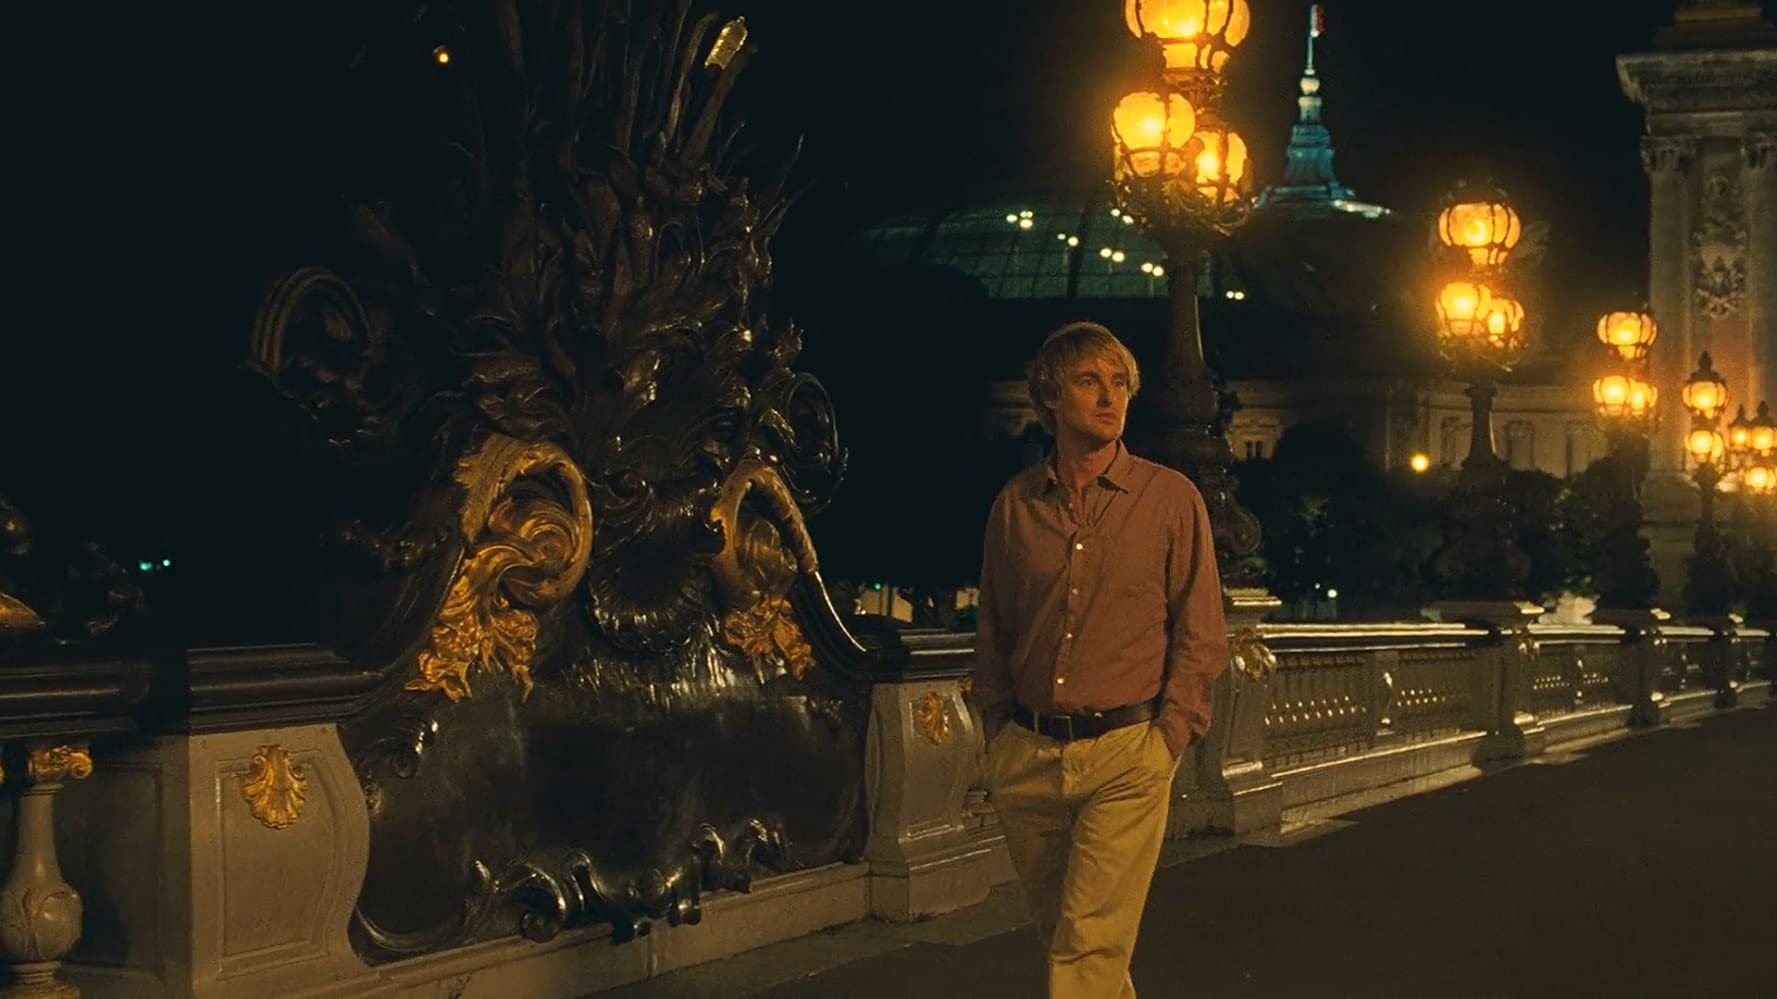 Owen Wilson walks the streets of Paris in Midnight in Paris (2011)